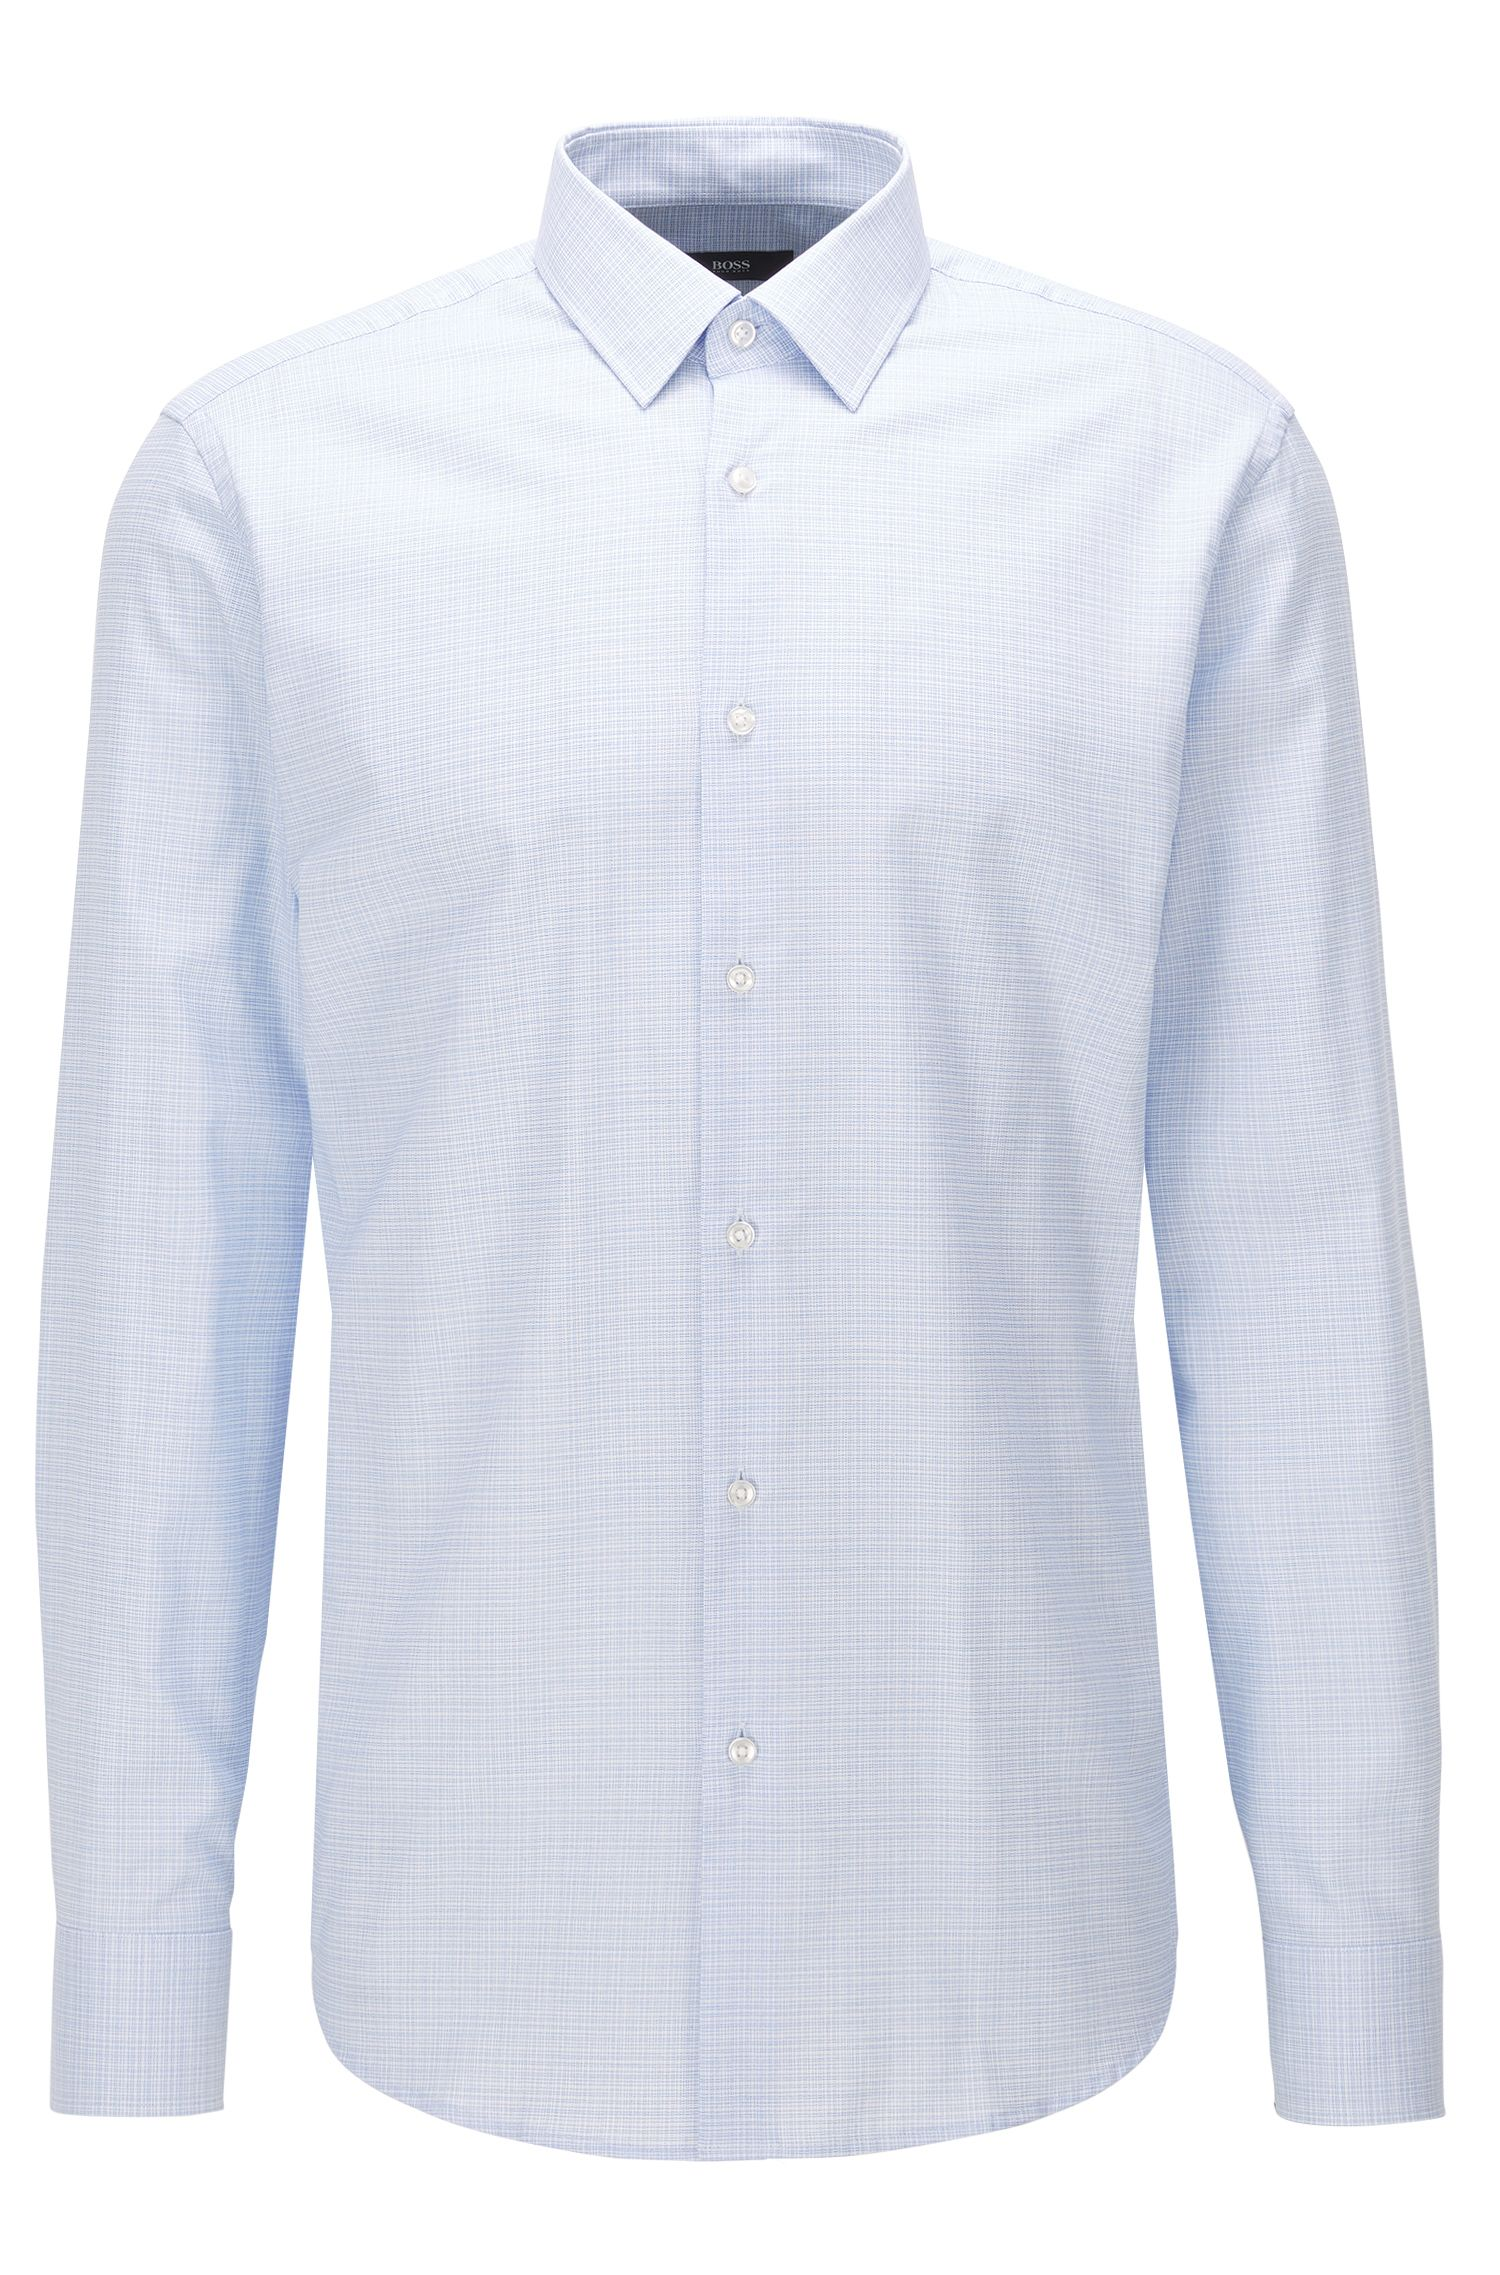 Crosshatch Easy Iron Cotton Dress Shirt, Regular Fit | Enzo